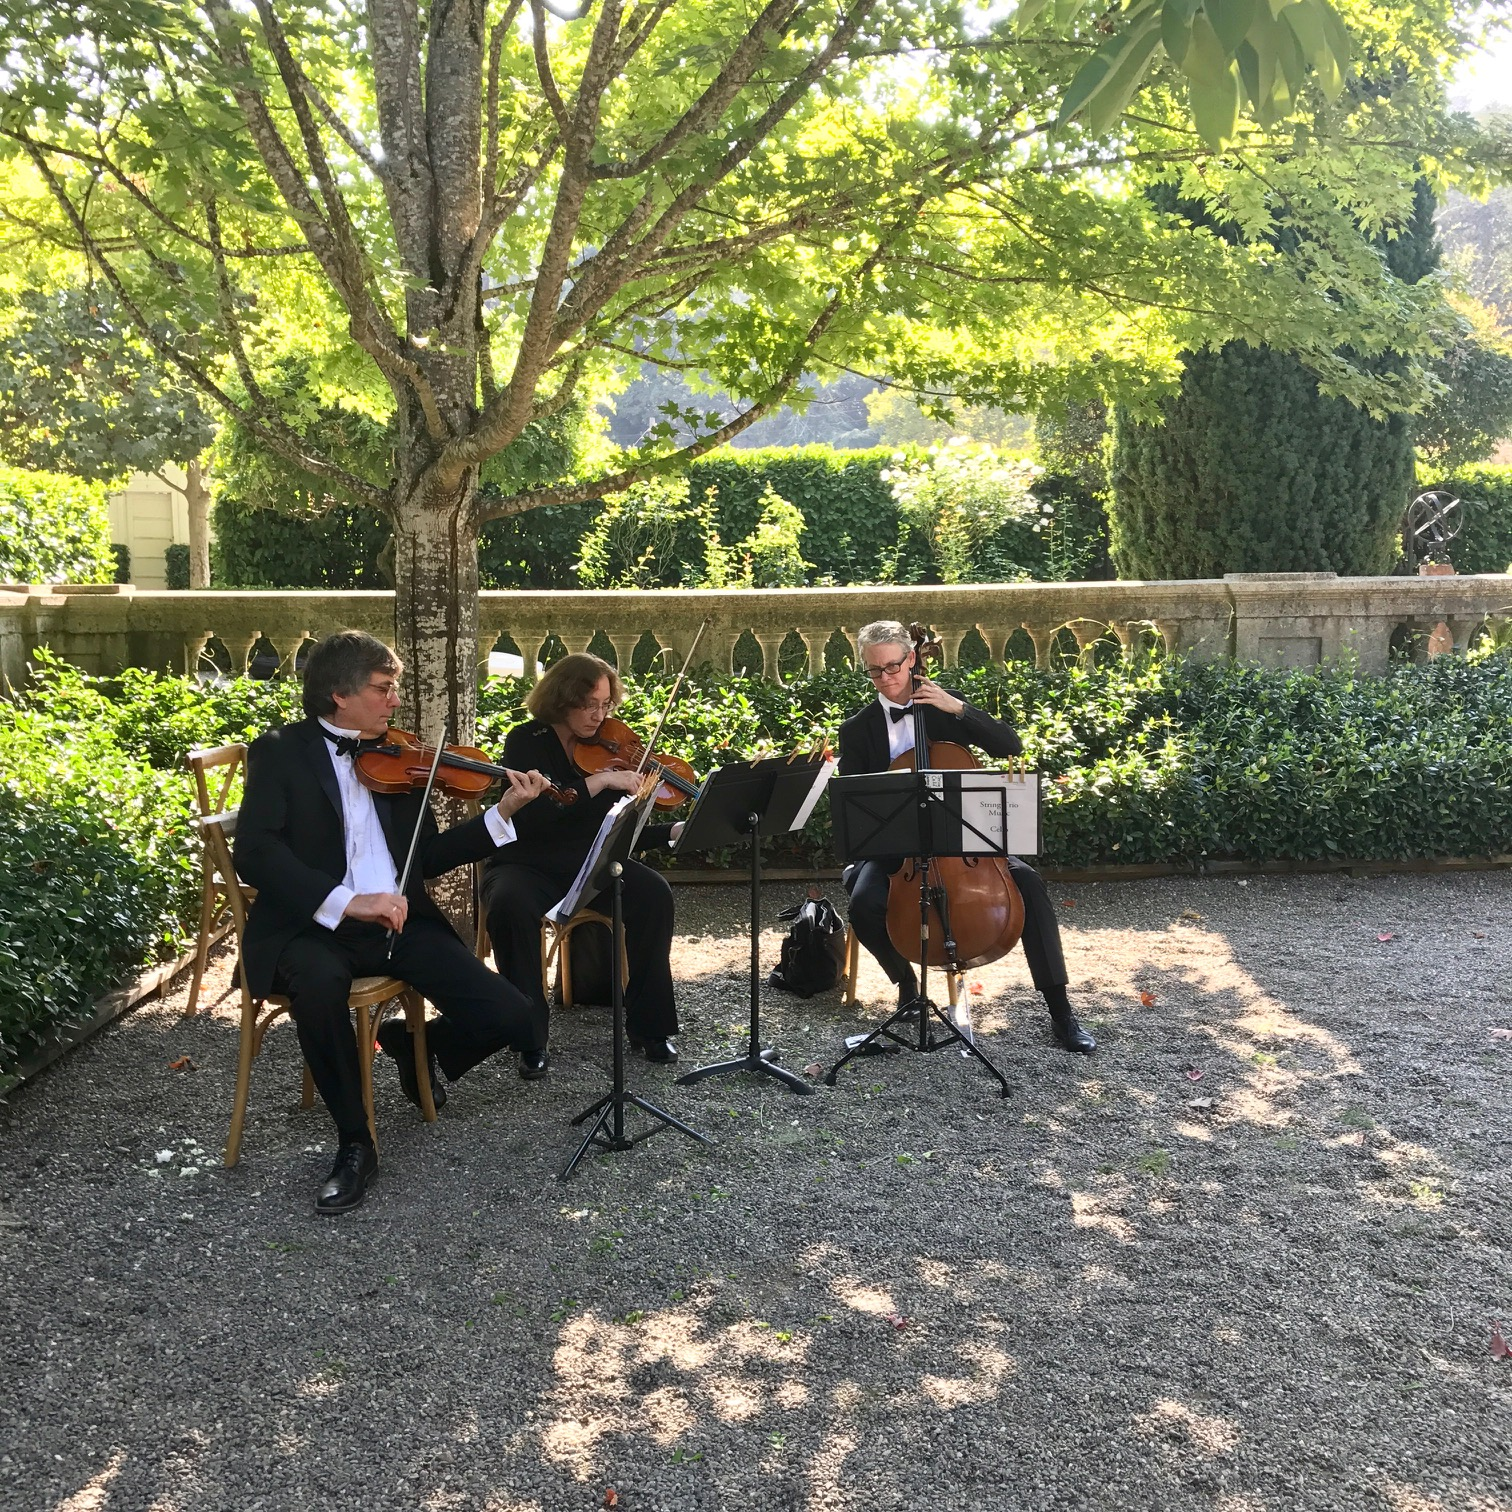 The string quartet played a marvelous mix of elegant sounds before & after the ceremony.